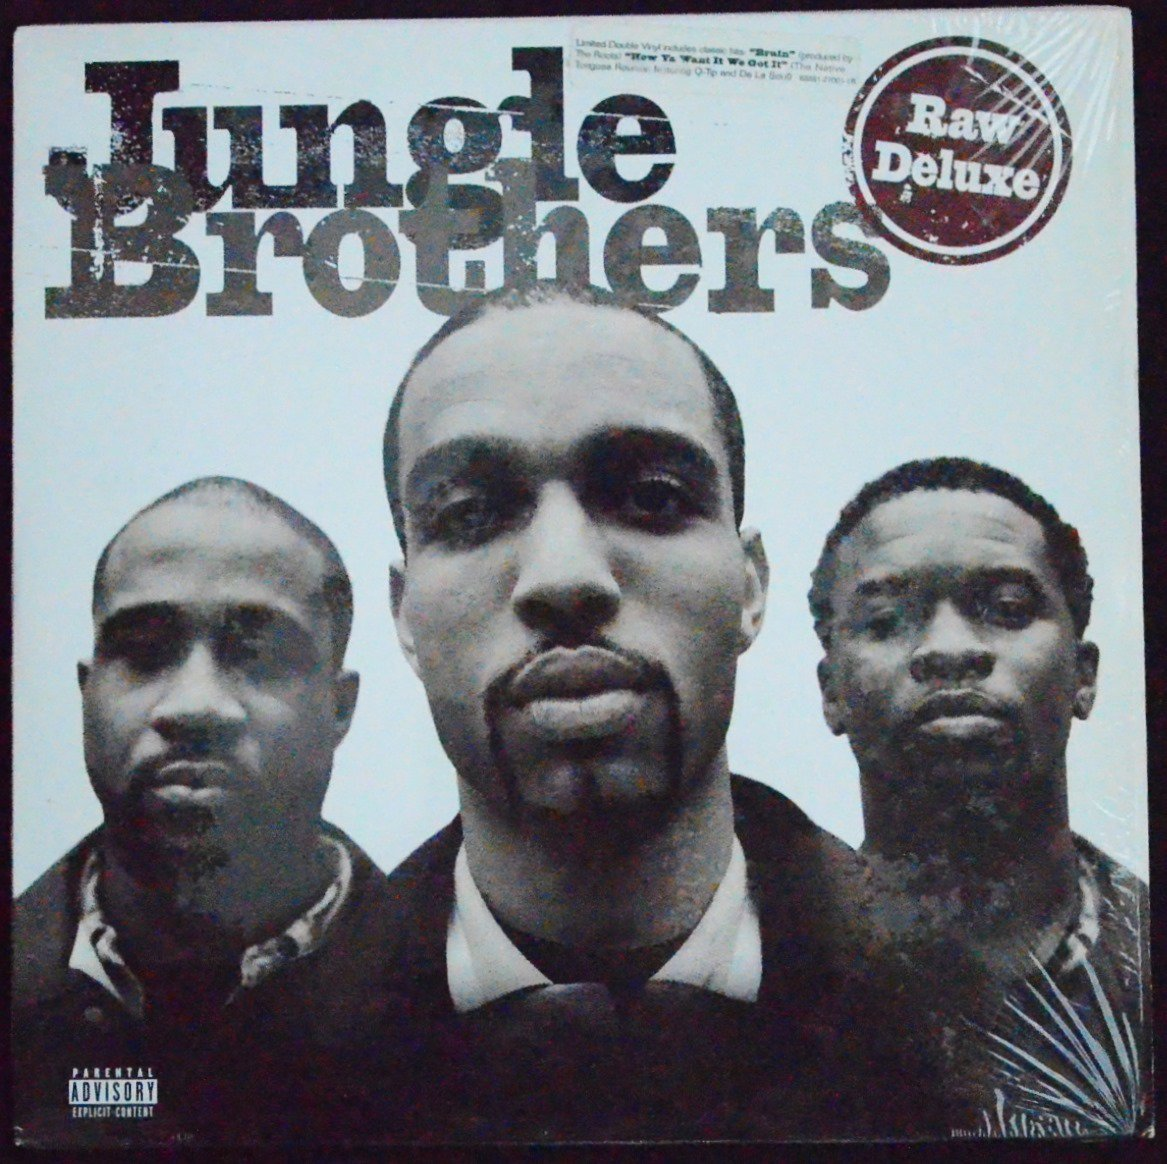 JUNGLE BROTHERS / RAW DELUXE (2LP)